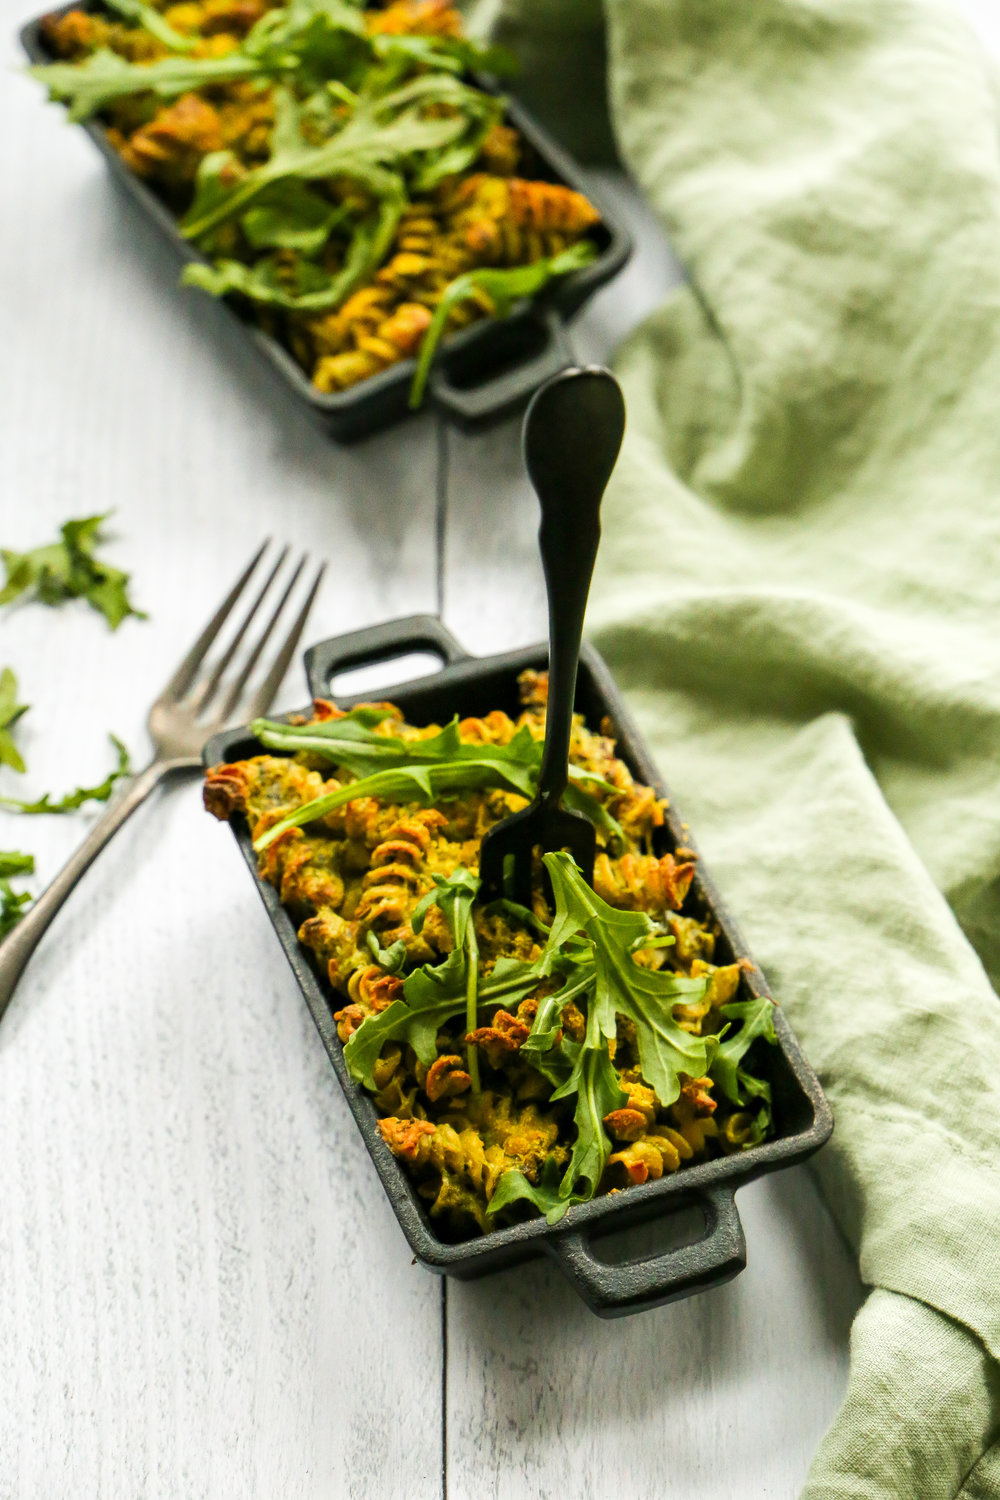 Mac and Cheese and Greens - Because even though St. Patrick's Day is over, you can still love yourself with some greens.